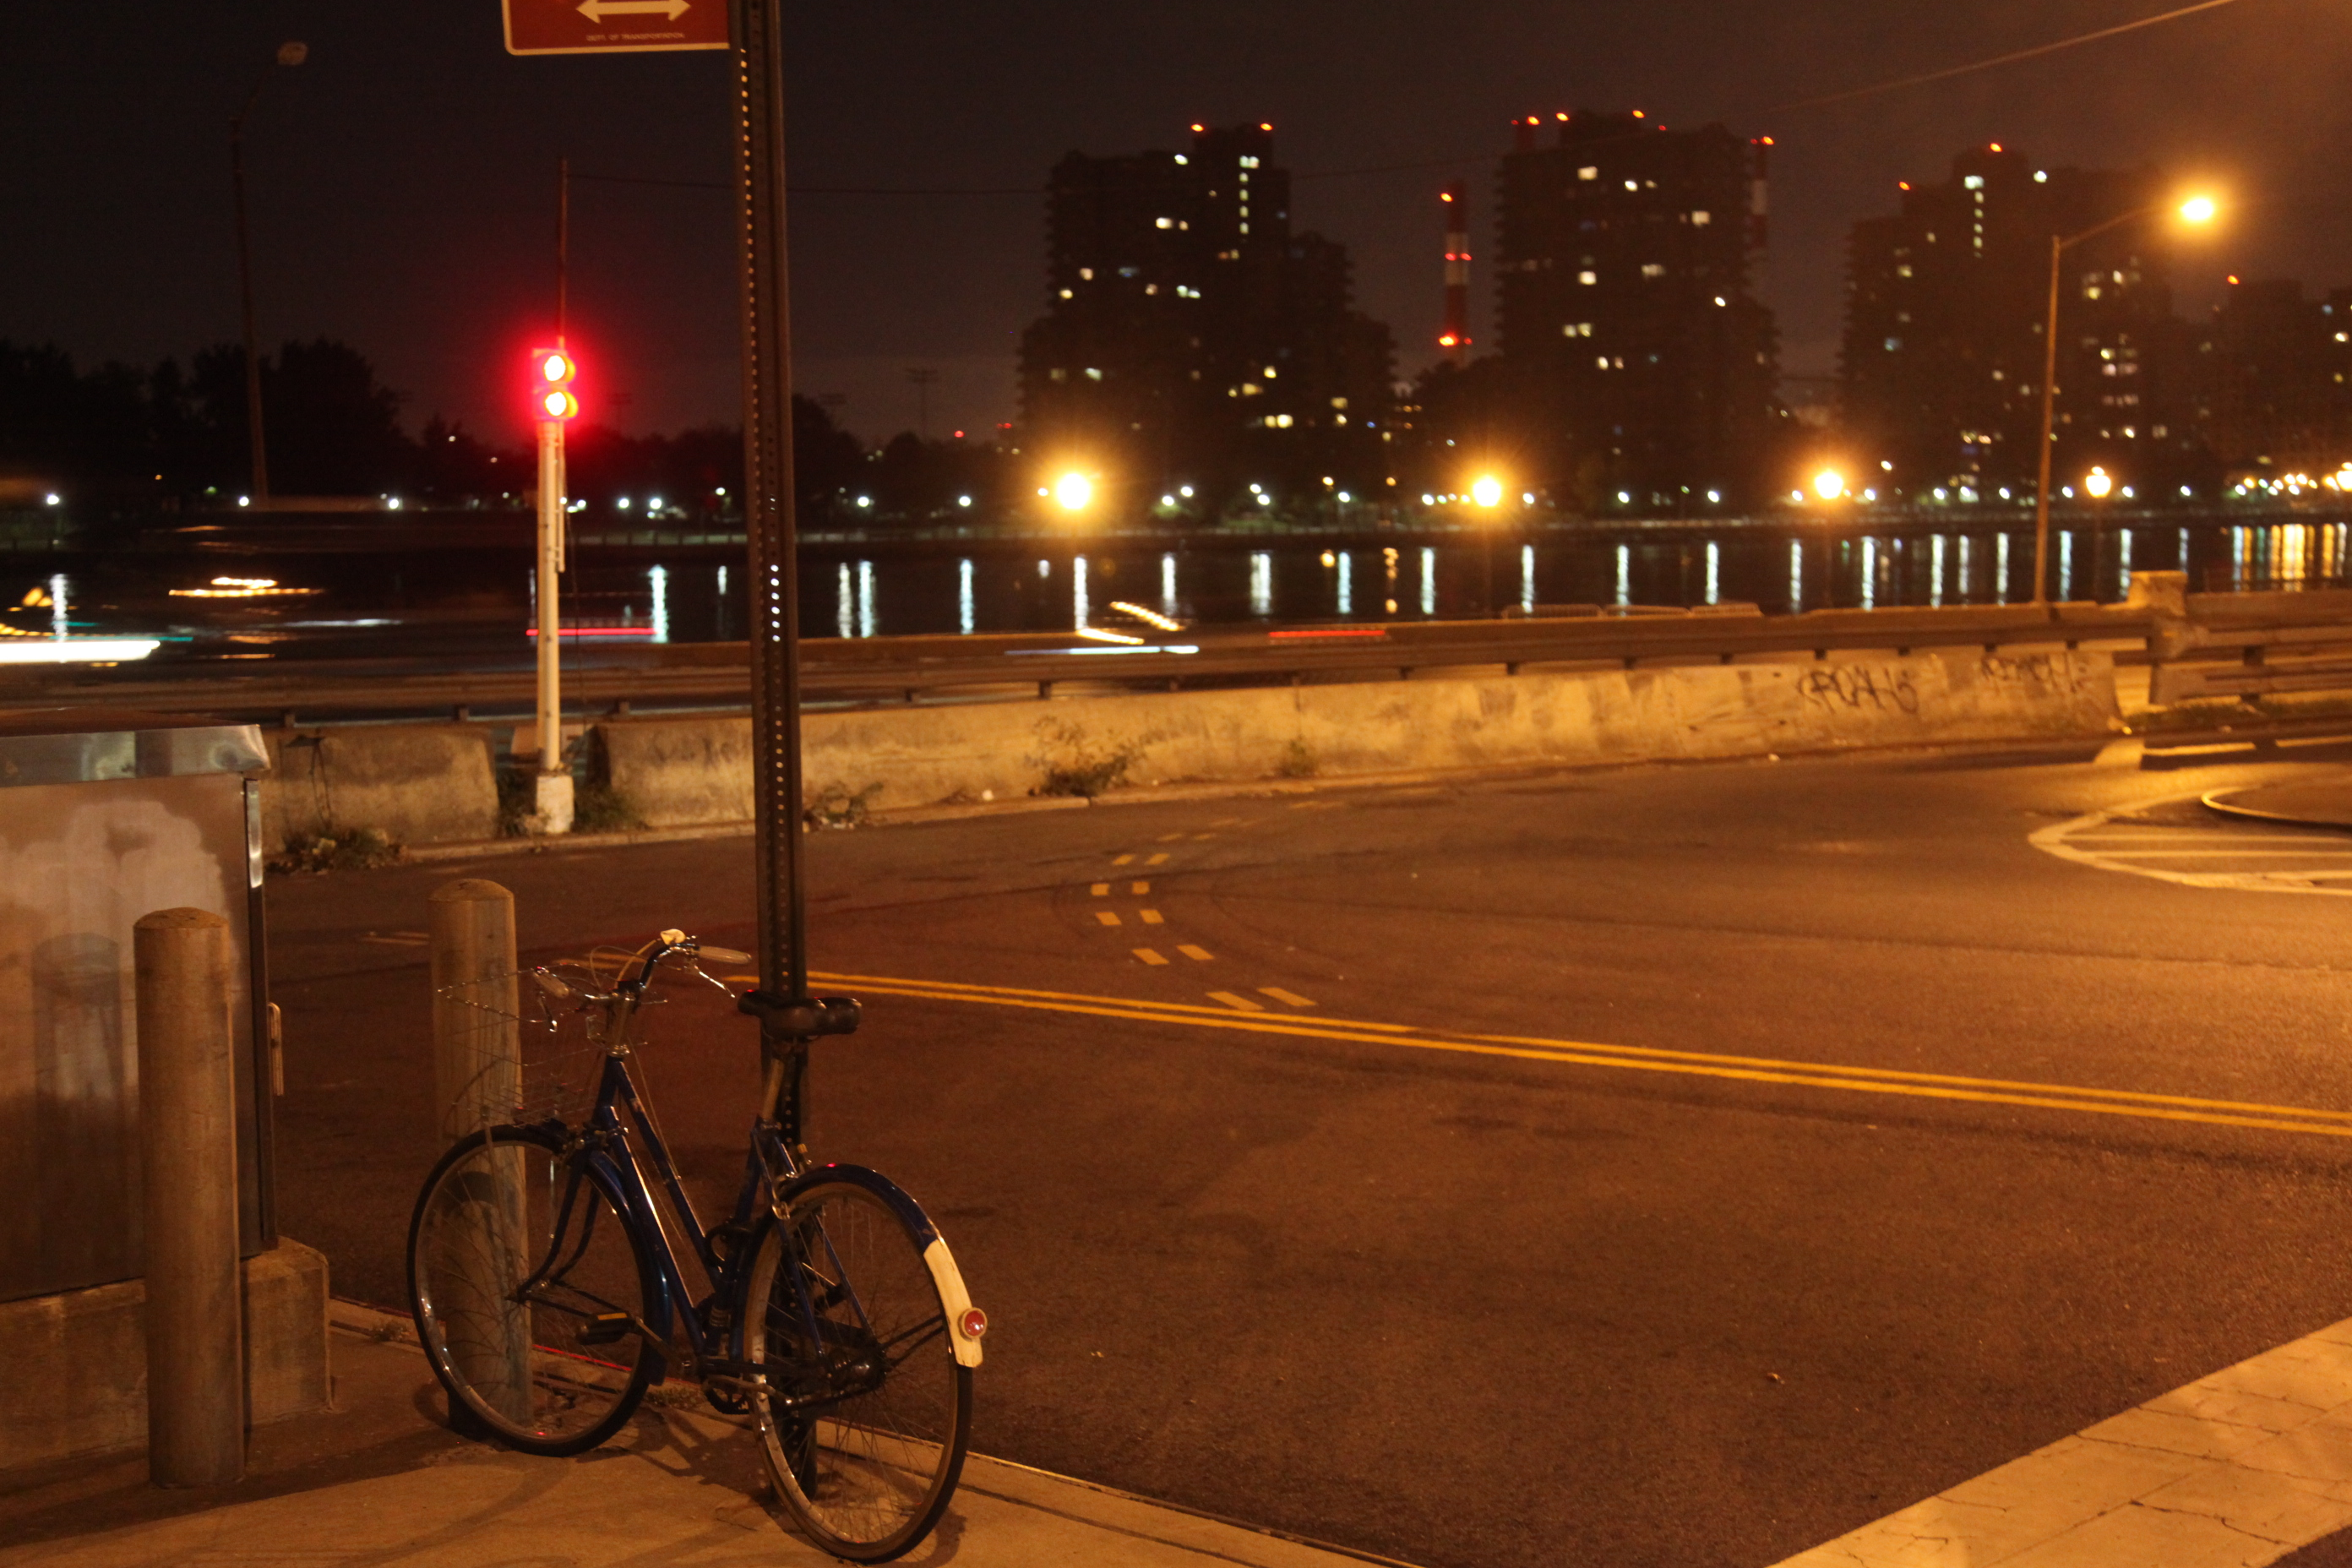 Night life on the FDR